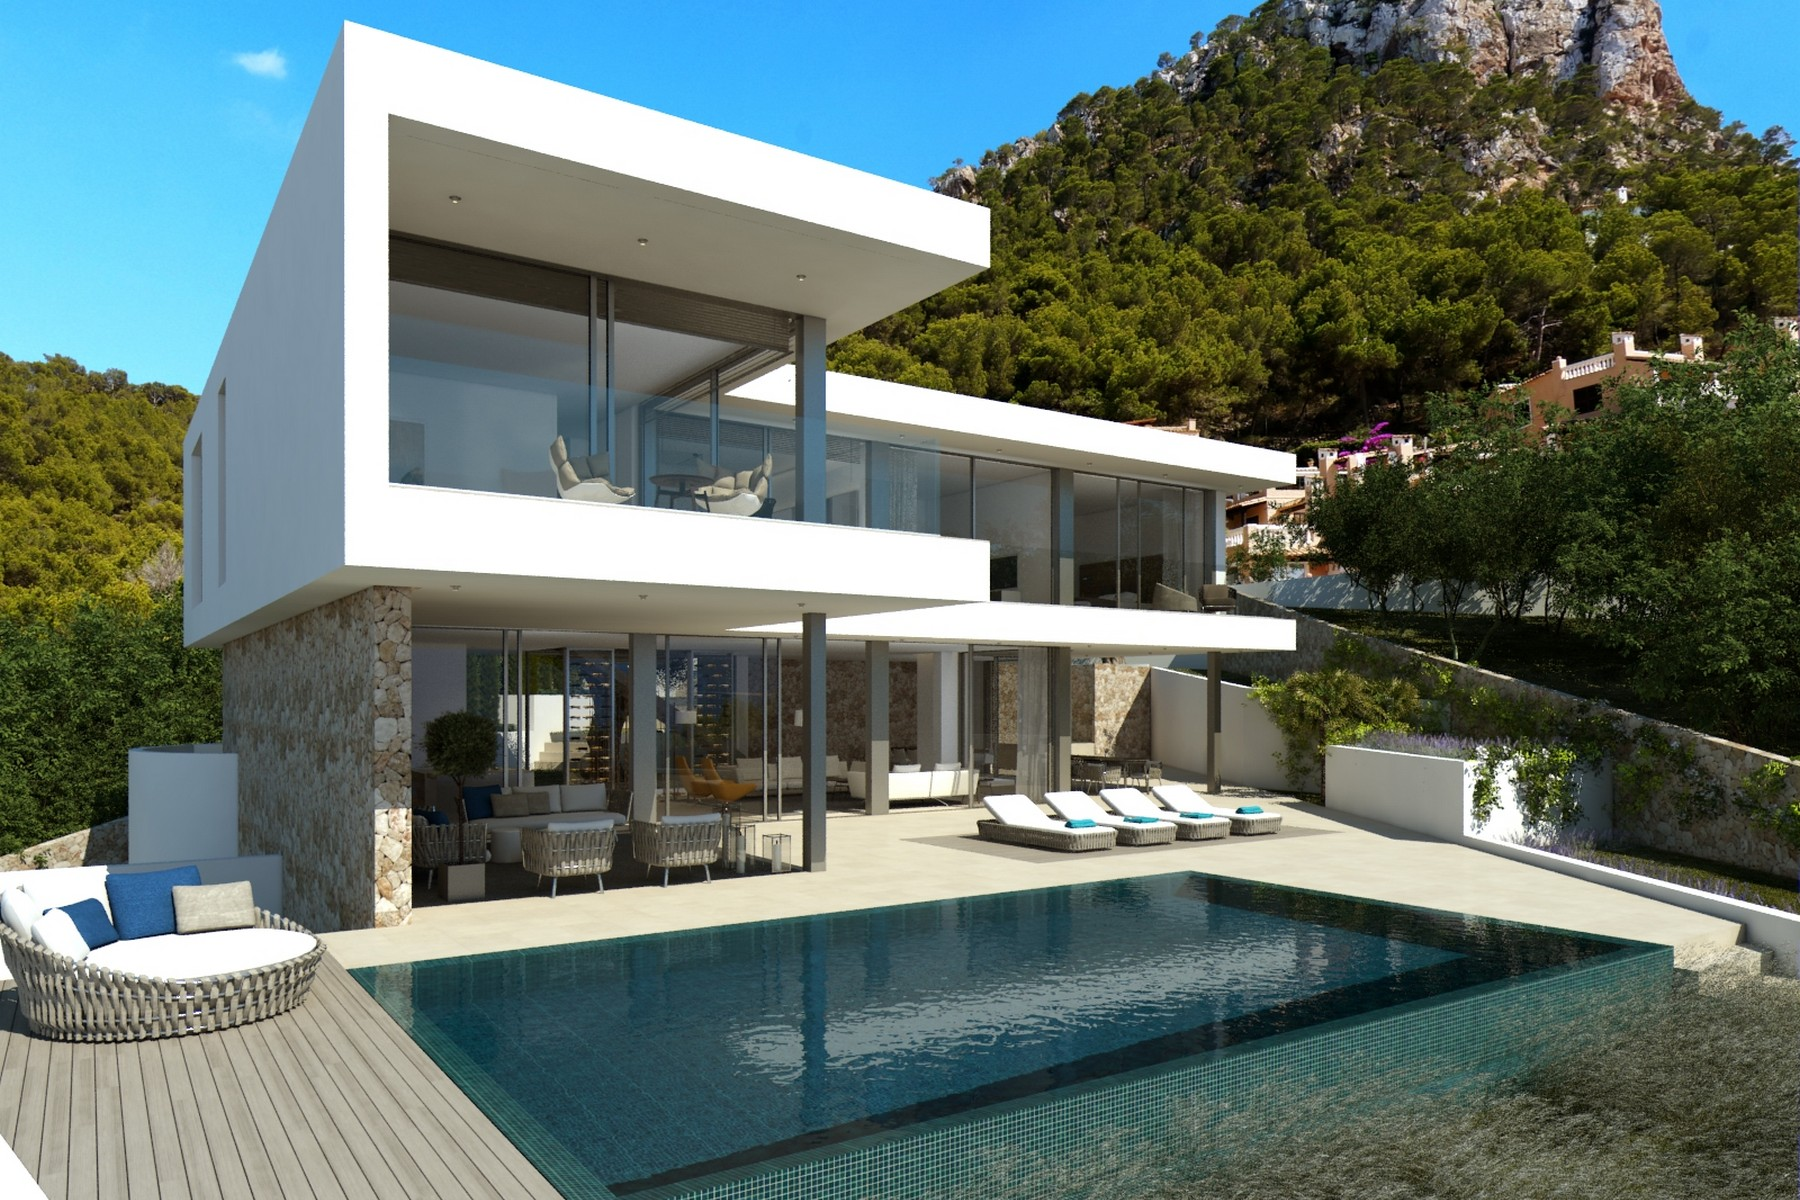 Single Family Home for Sale at New build villa with sea views in Port Andratx Port Andratx, Mallorca, 07157 Spain